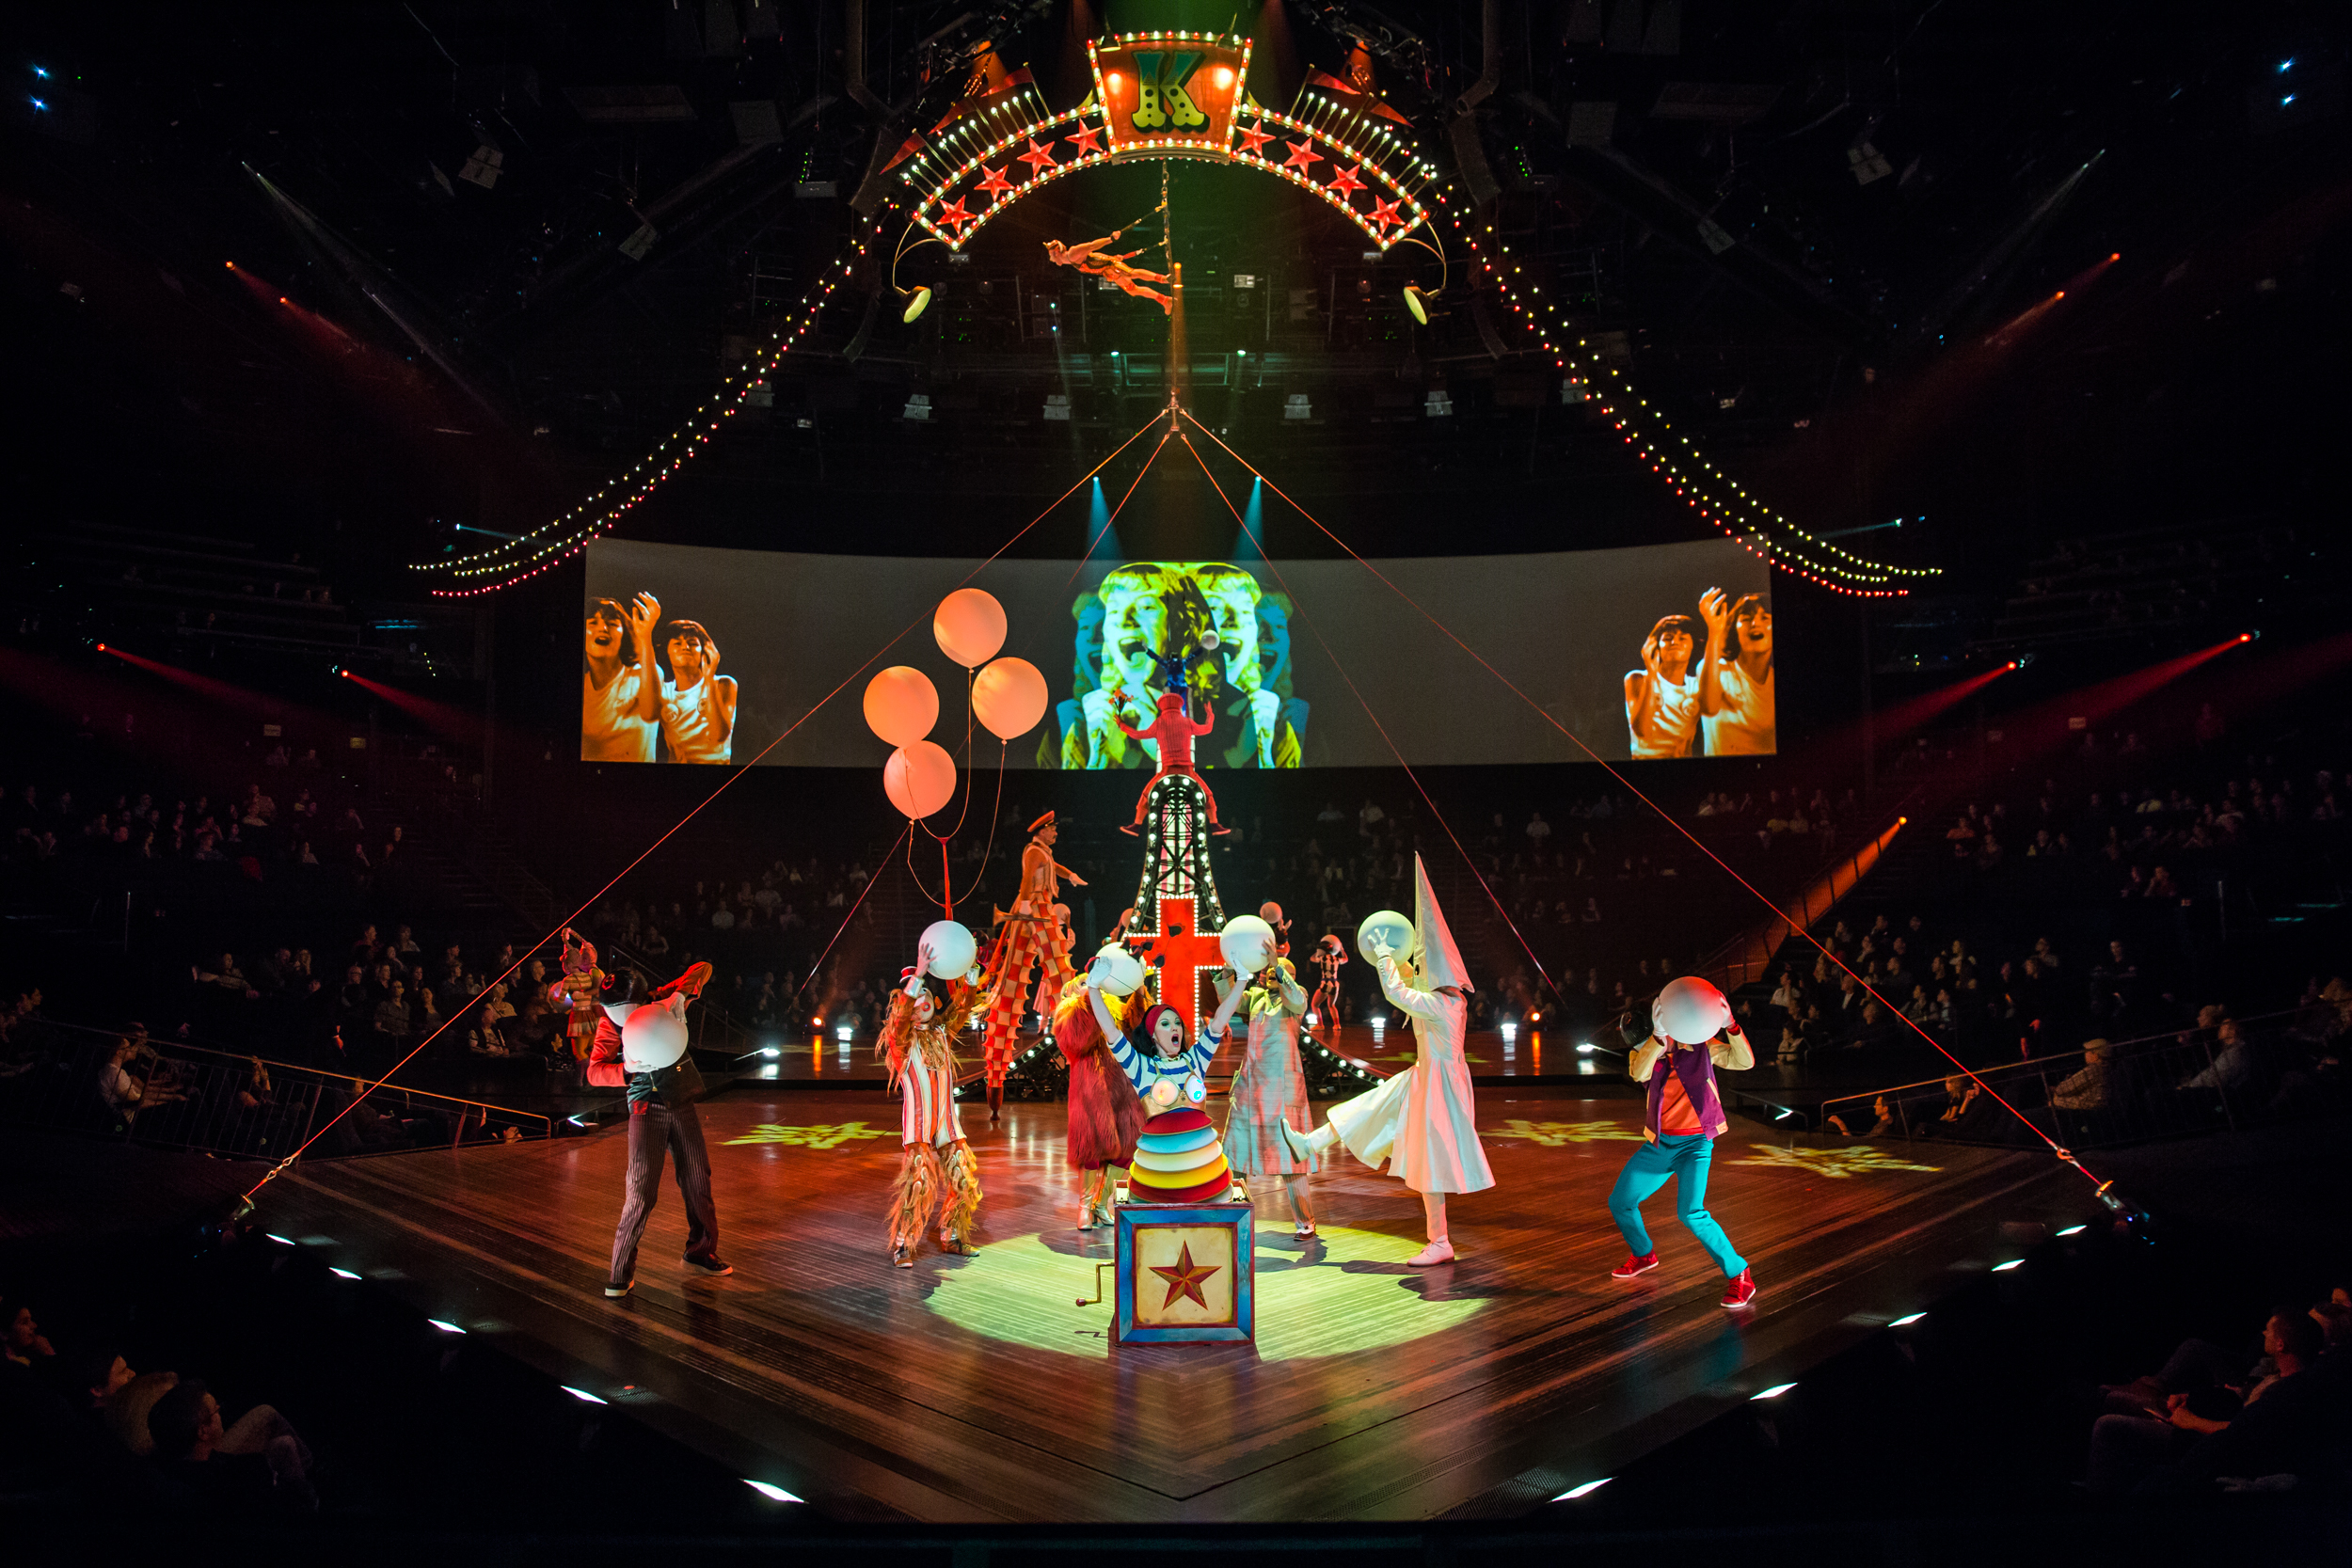 """The Beatles LOVE"" by Cirque du Soleil"